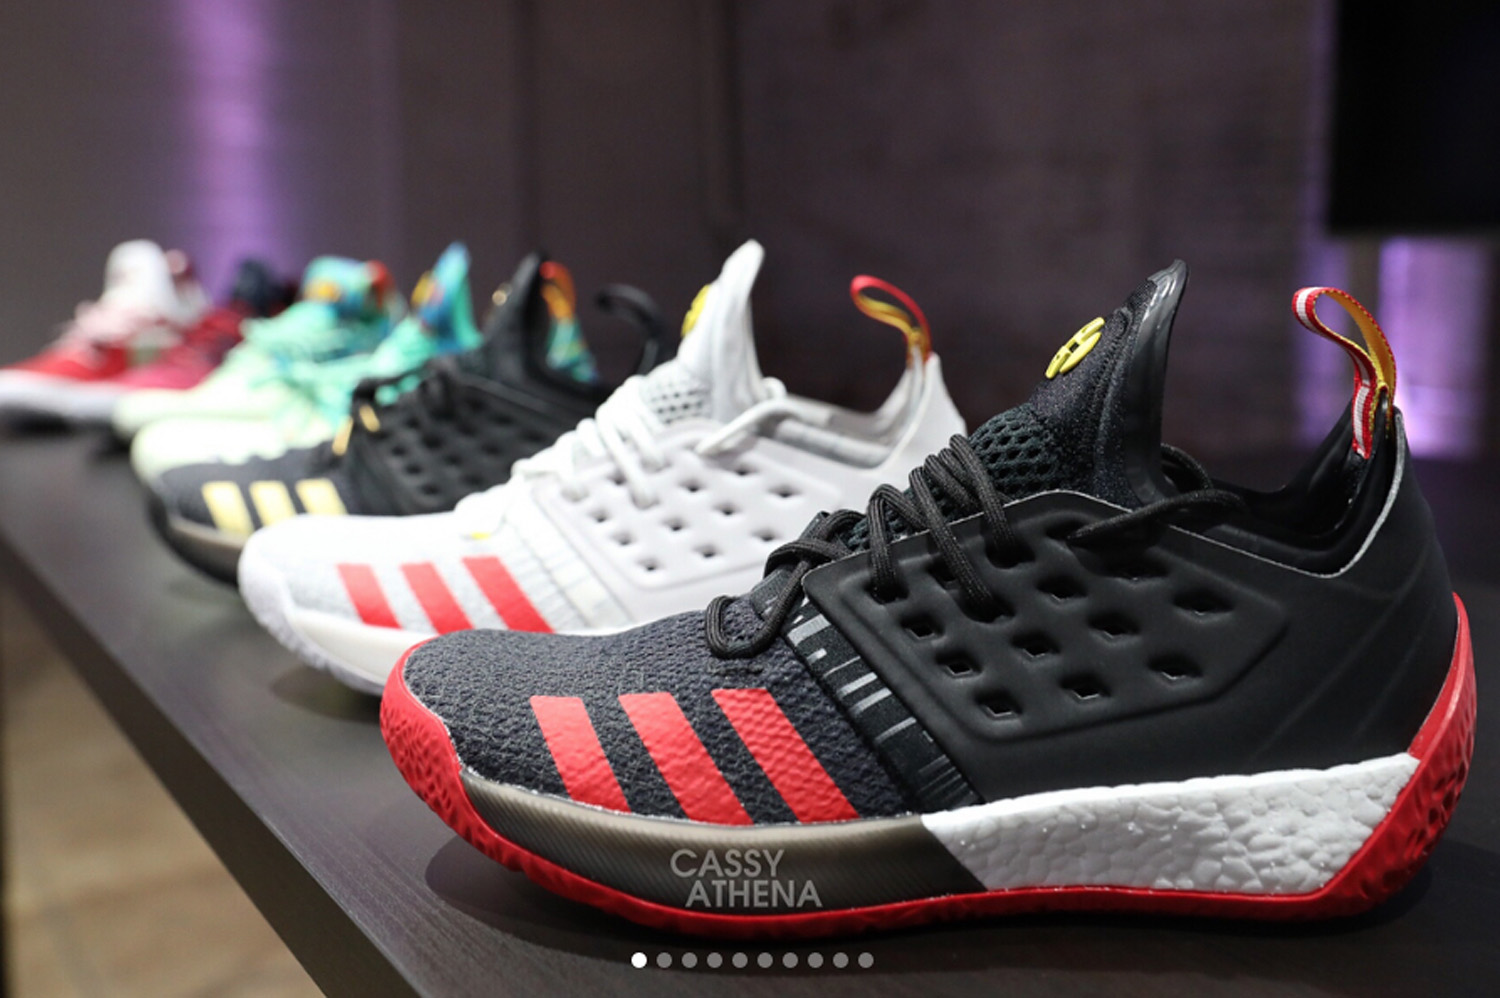 6c16fa84ae7 james harden Archives - Page 2 of 6 - WearTesters